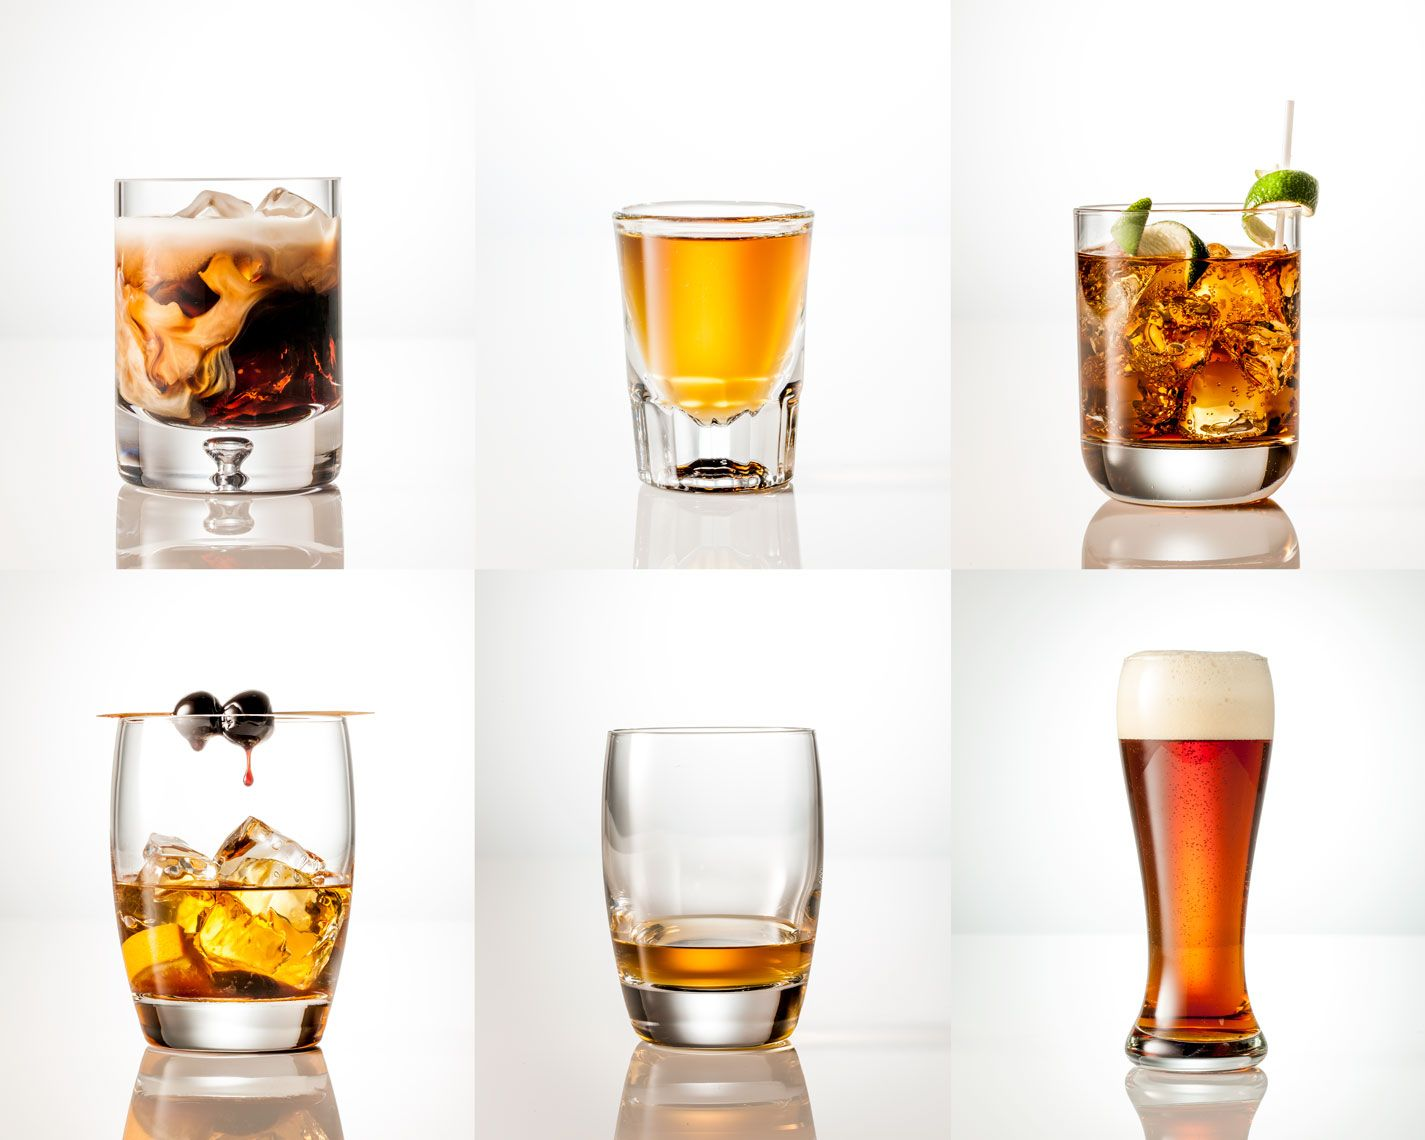 We had a blast shooting with Clink Barware a few months ago to capture some drinks in their beautiful glasses! #TeriStudios More at our website: http://teristudios.com